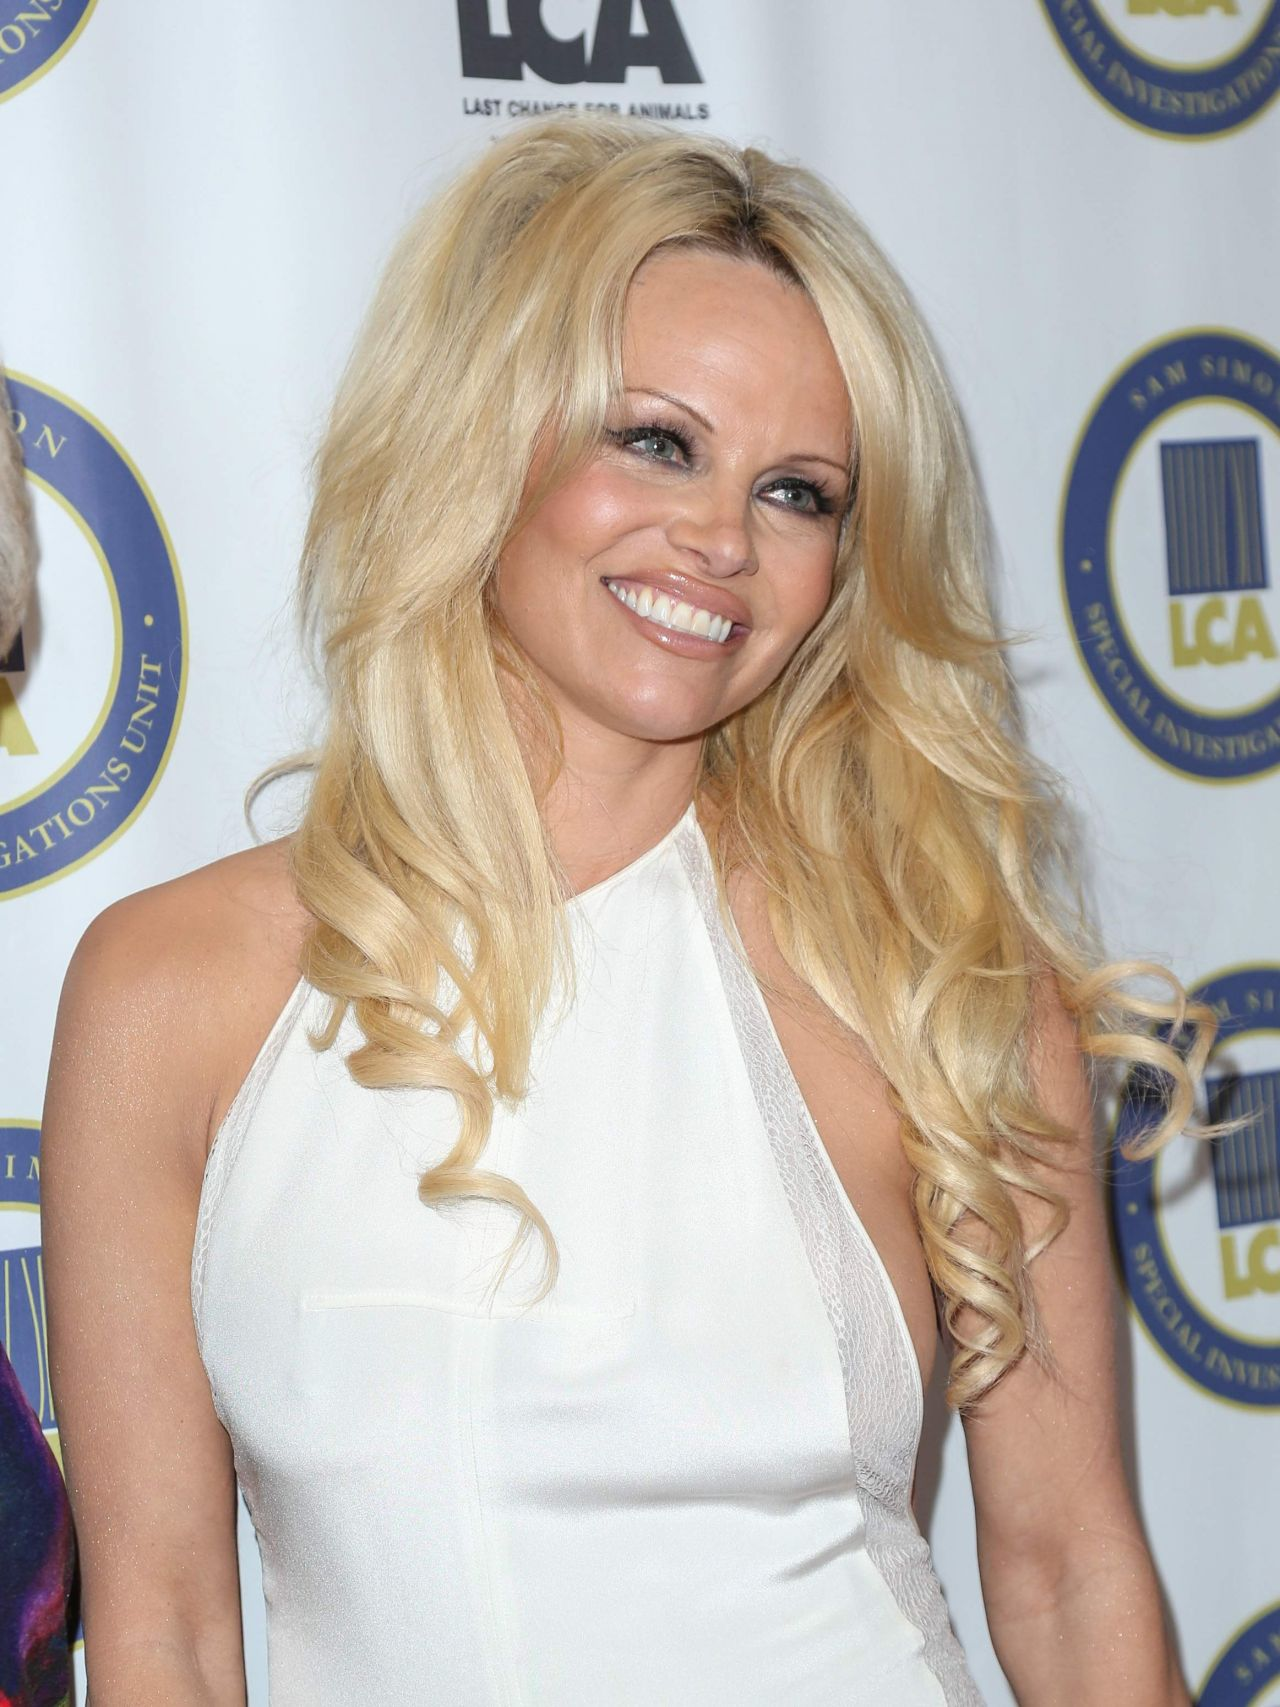 Pamela Anderson – 2015 Last Chance For Animals Gala in Beverly Hills